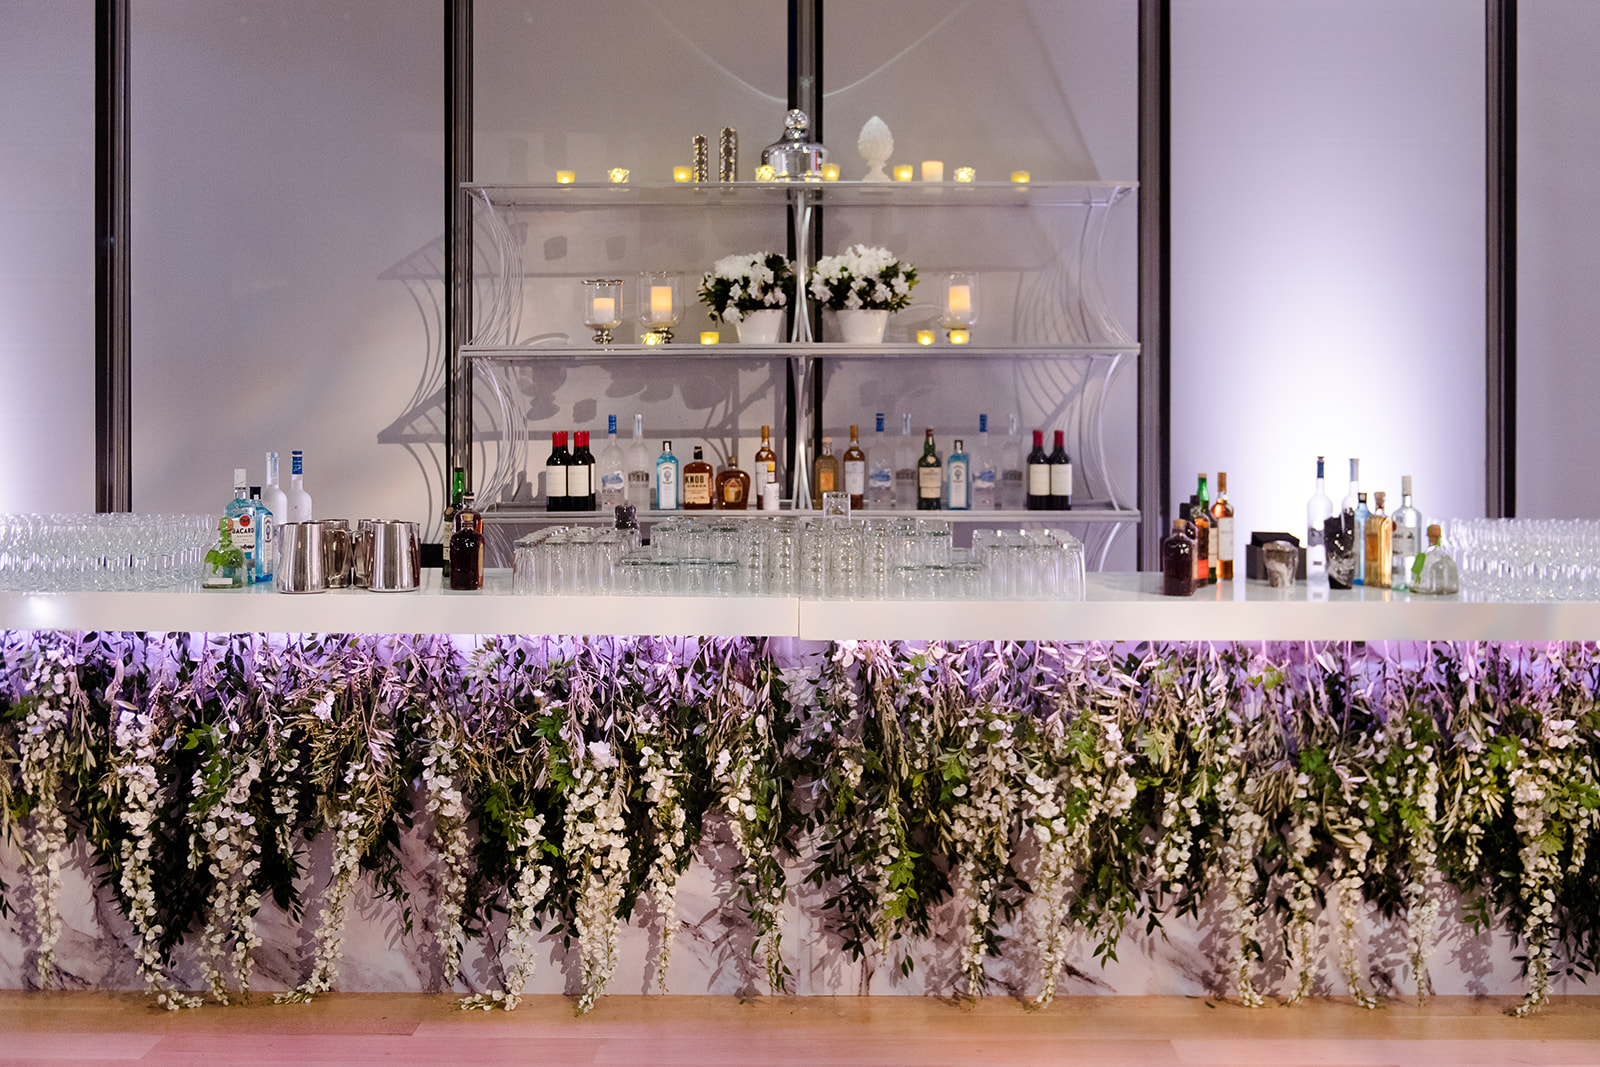 Floral white bar design for wedding in Chicago by Kehoe Designs and Renee Price. Wedding planning by Susan Cordogan of Big City Bride.